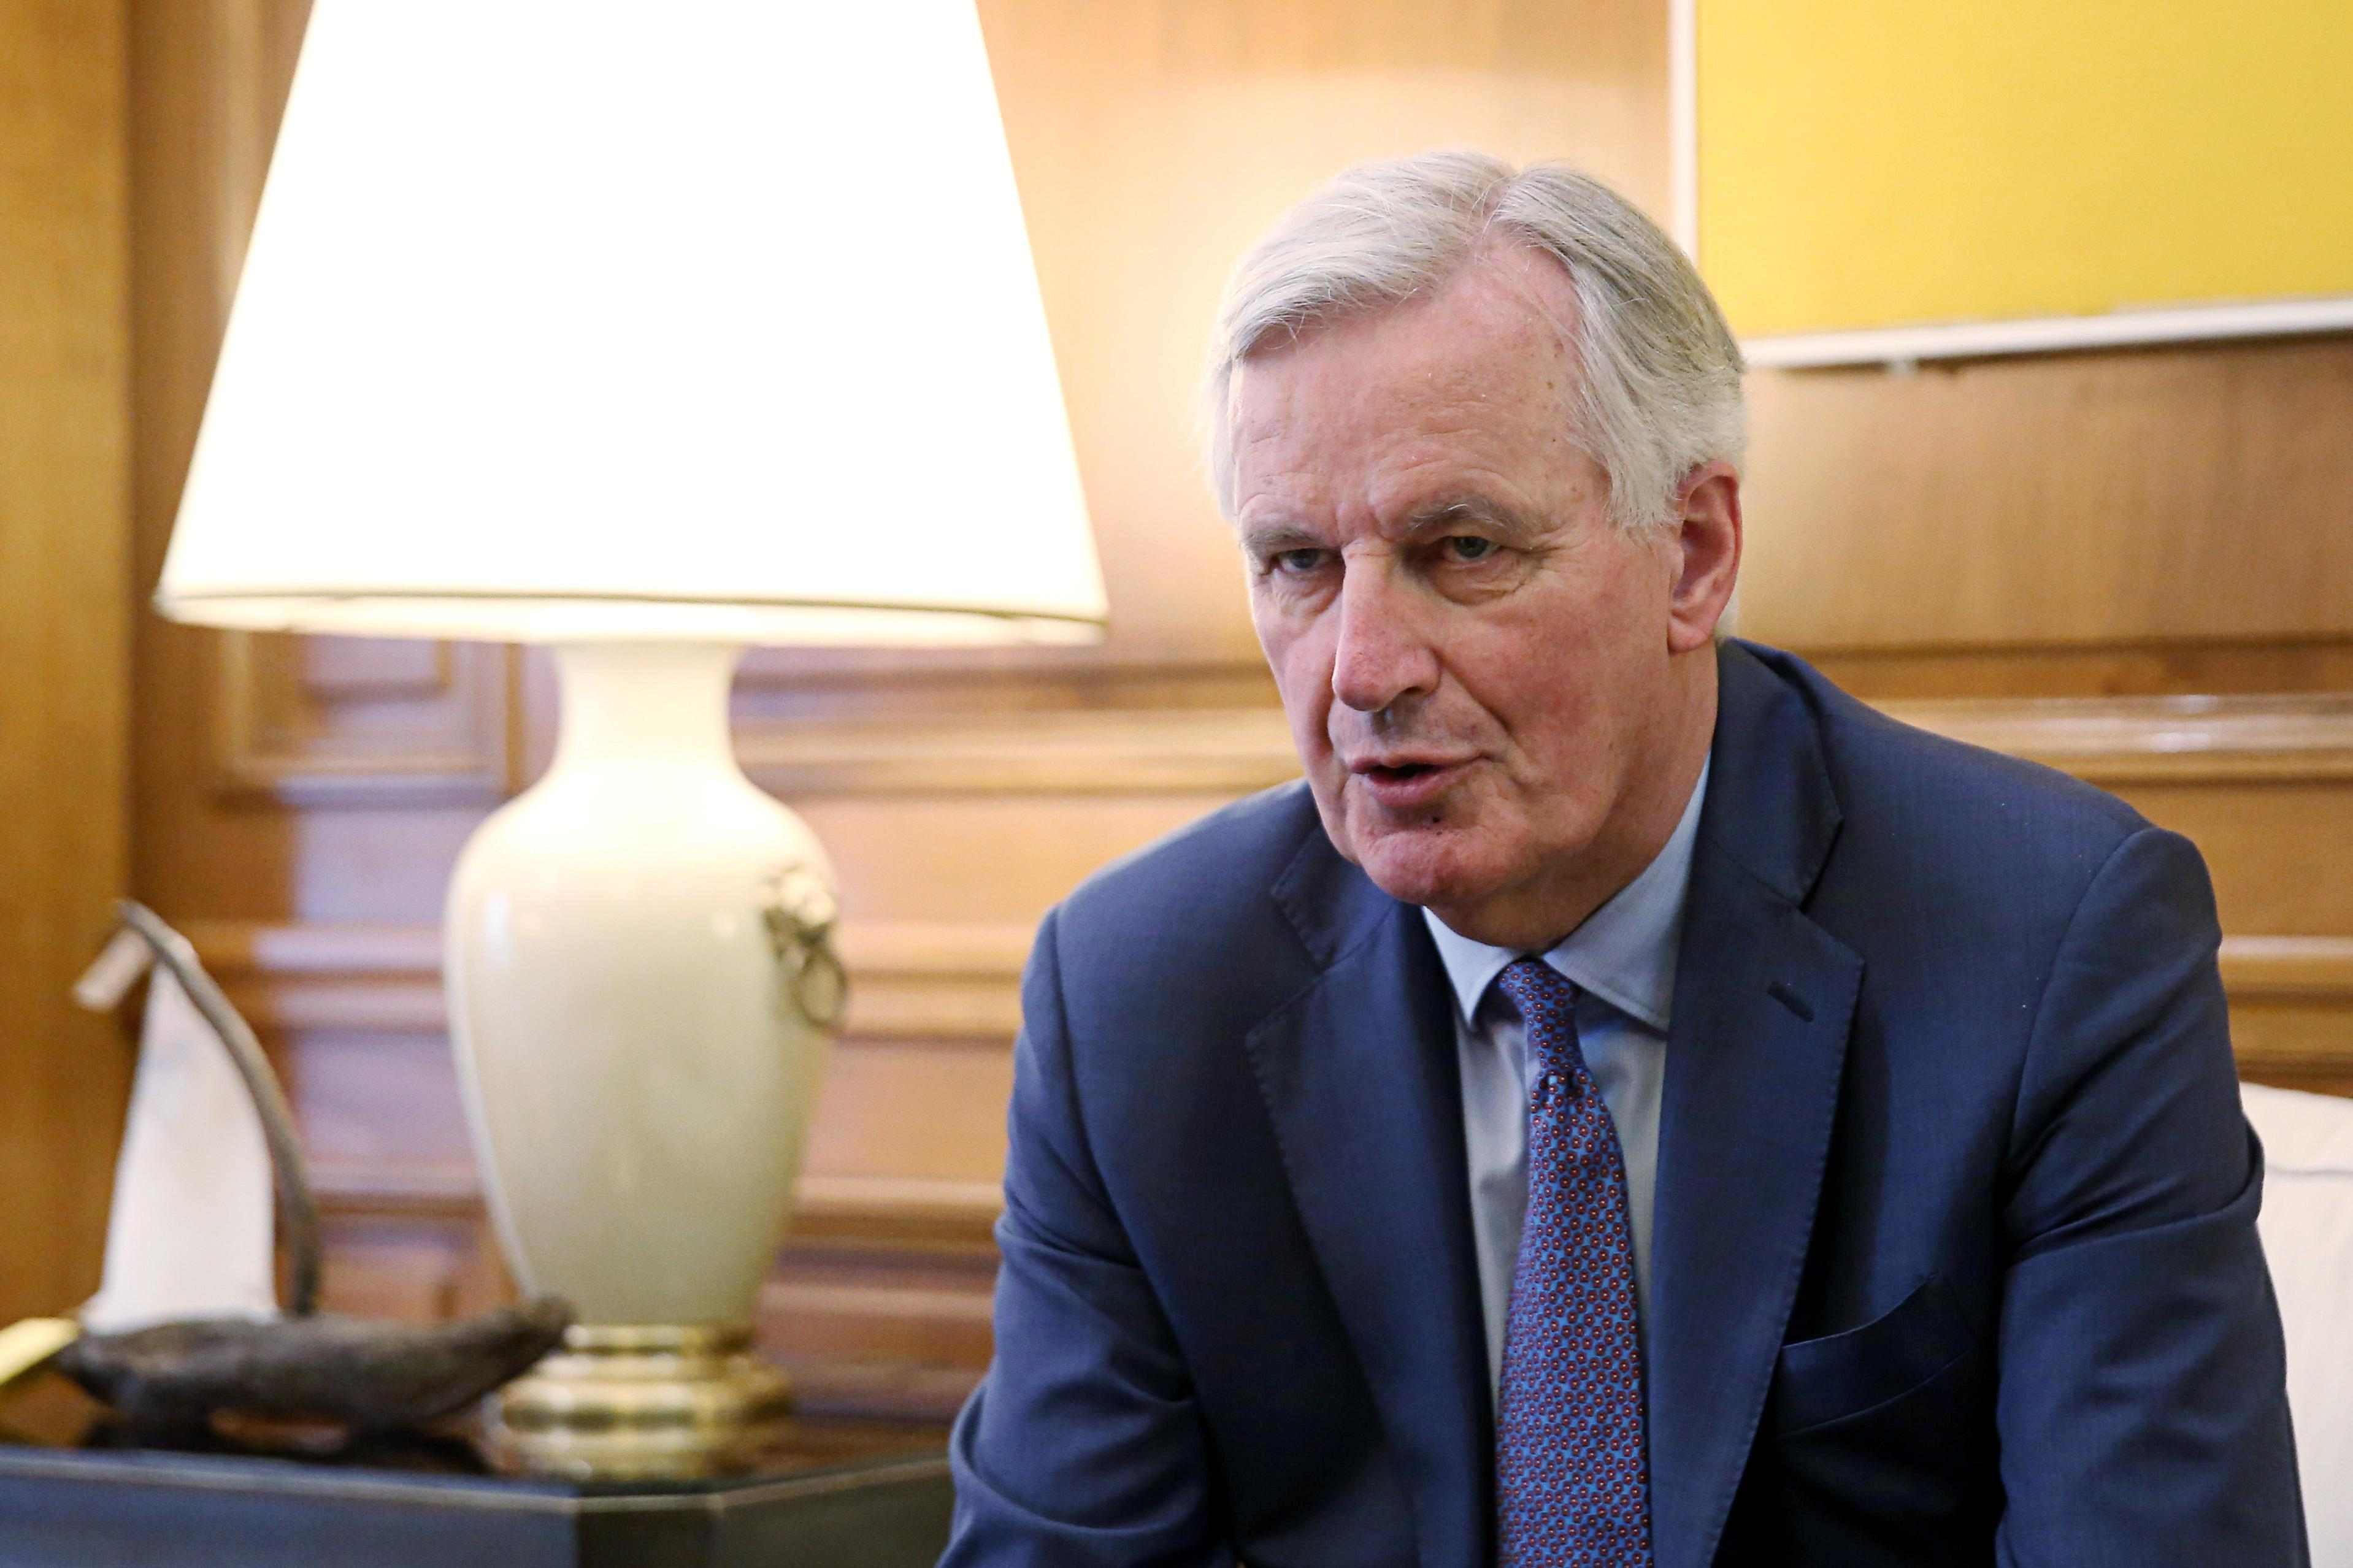 Barnier: EU waiting for 'realistic, operational & compatible' proposals from UK